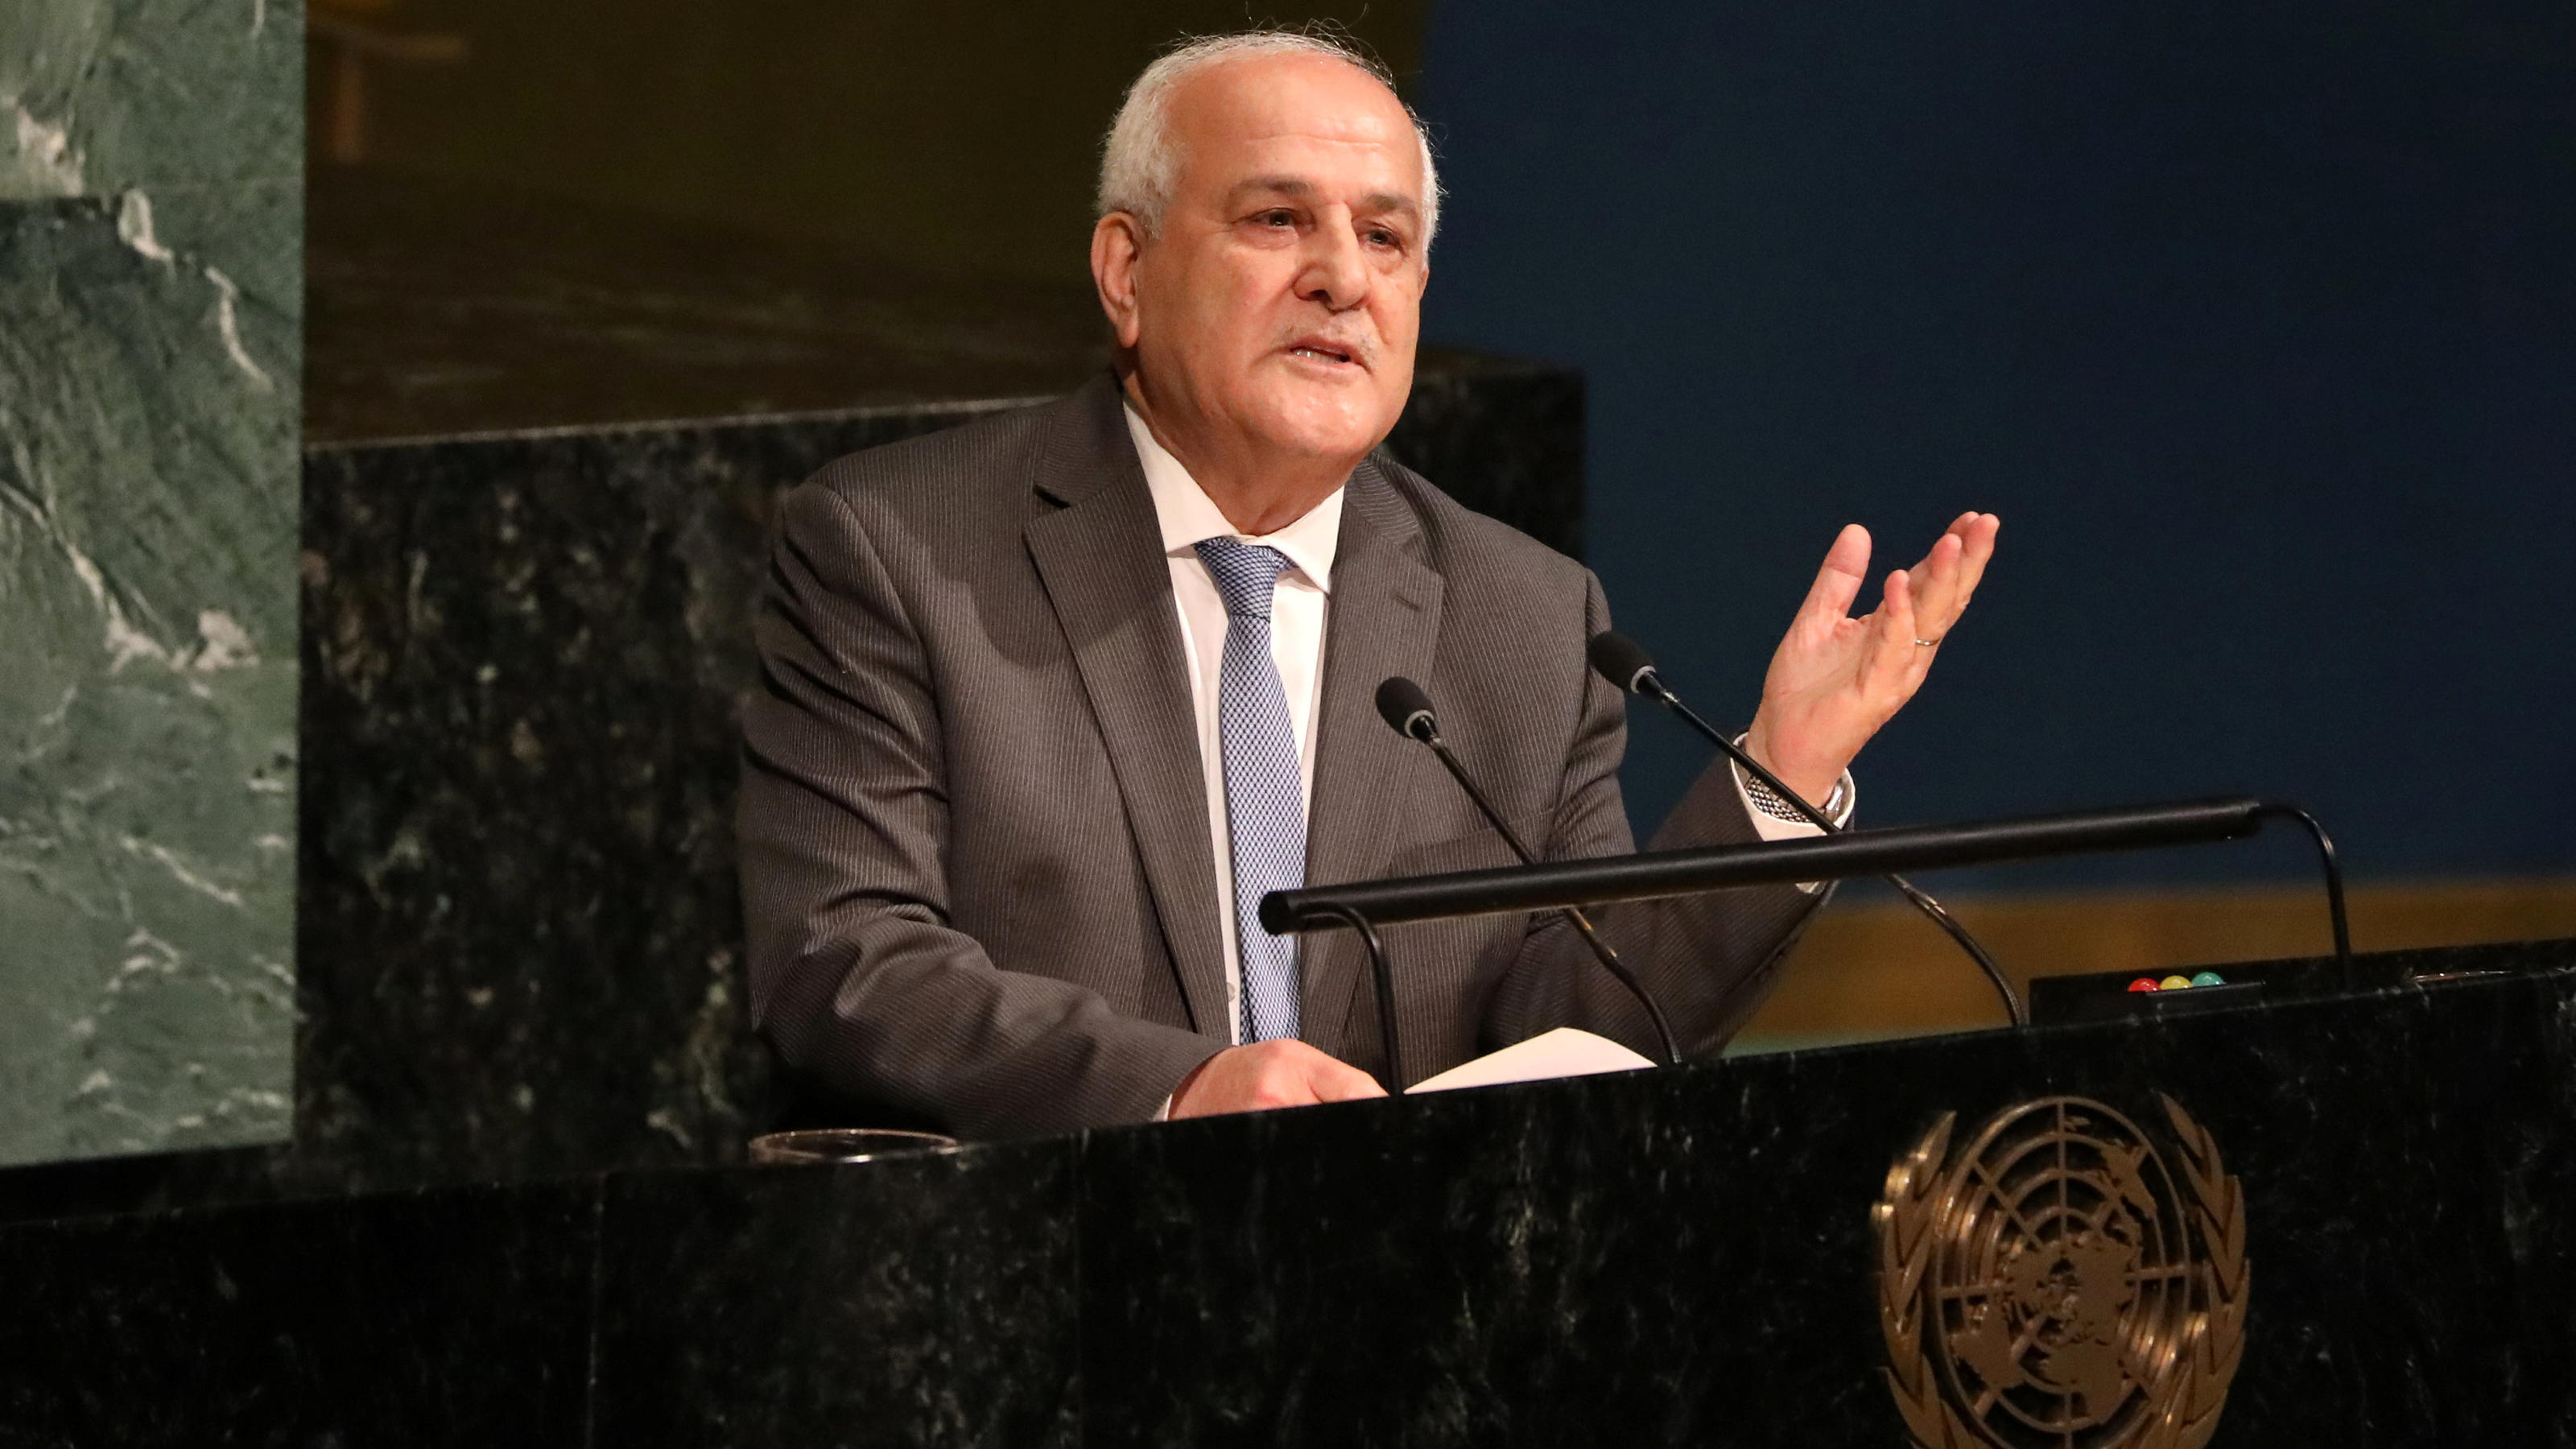 Palestinian Ambassador to the United Nations Riyad Mansour addresses a United Nations General Assembly meeting ahead of a vote on a draft resolution that would deplore the use of excessive force by Israeli troops against Palestinian civilians at U.N.